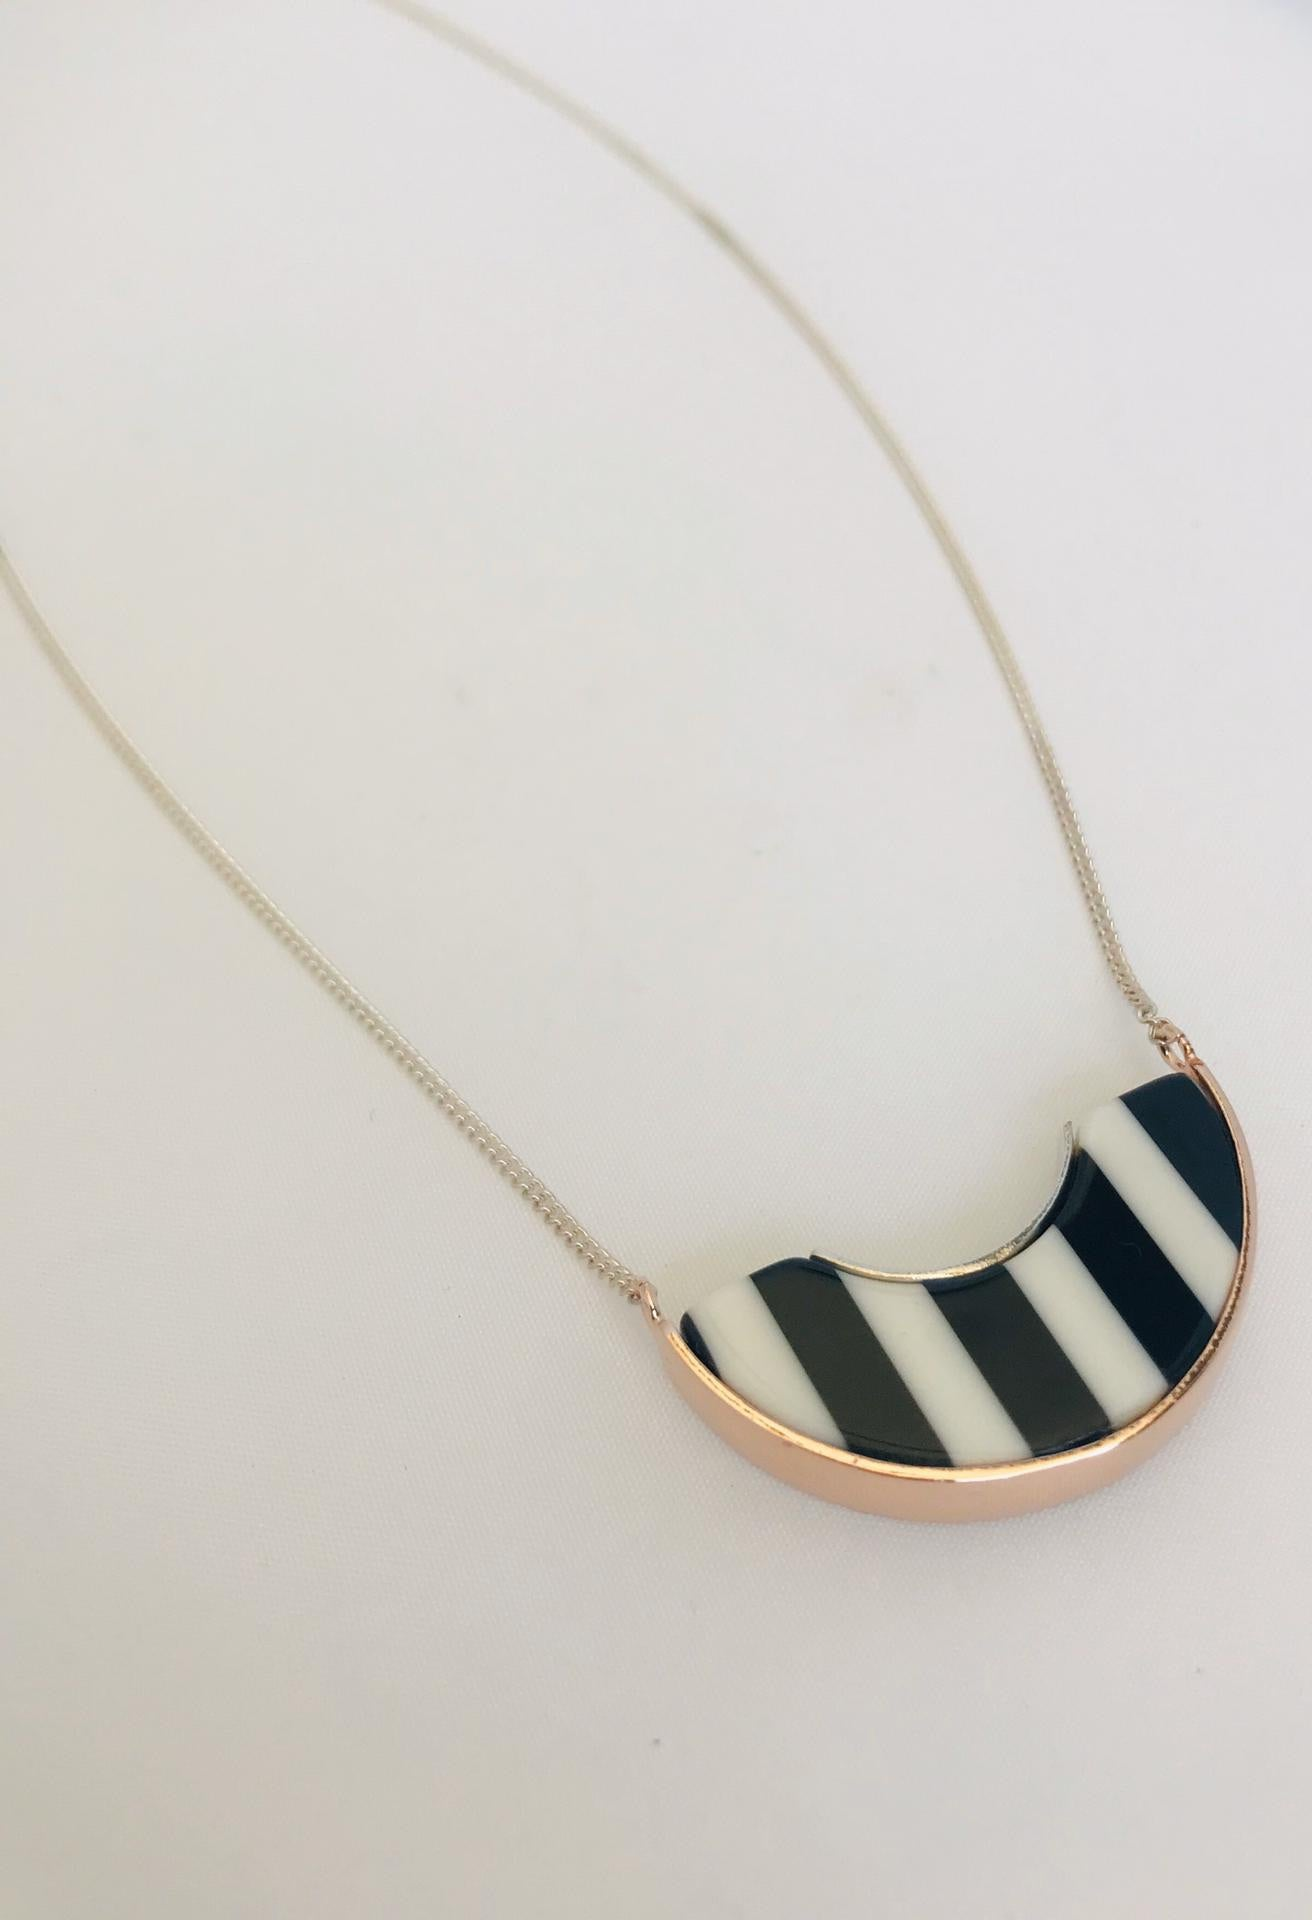 Wouters & Hendrix - silver necklace with pink and striped resin pendant